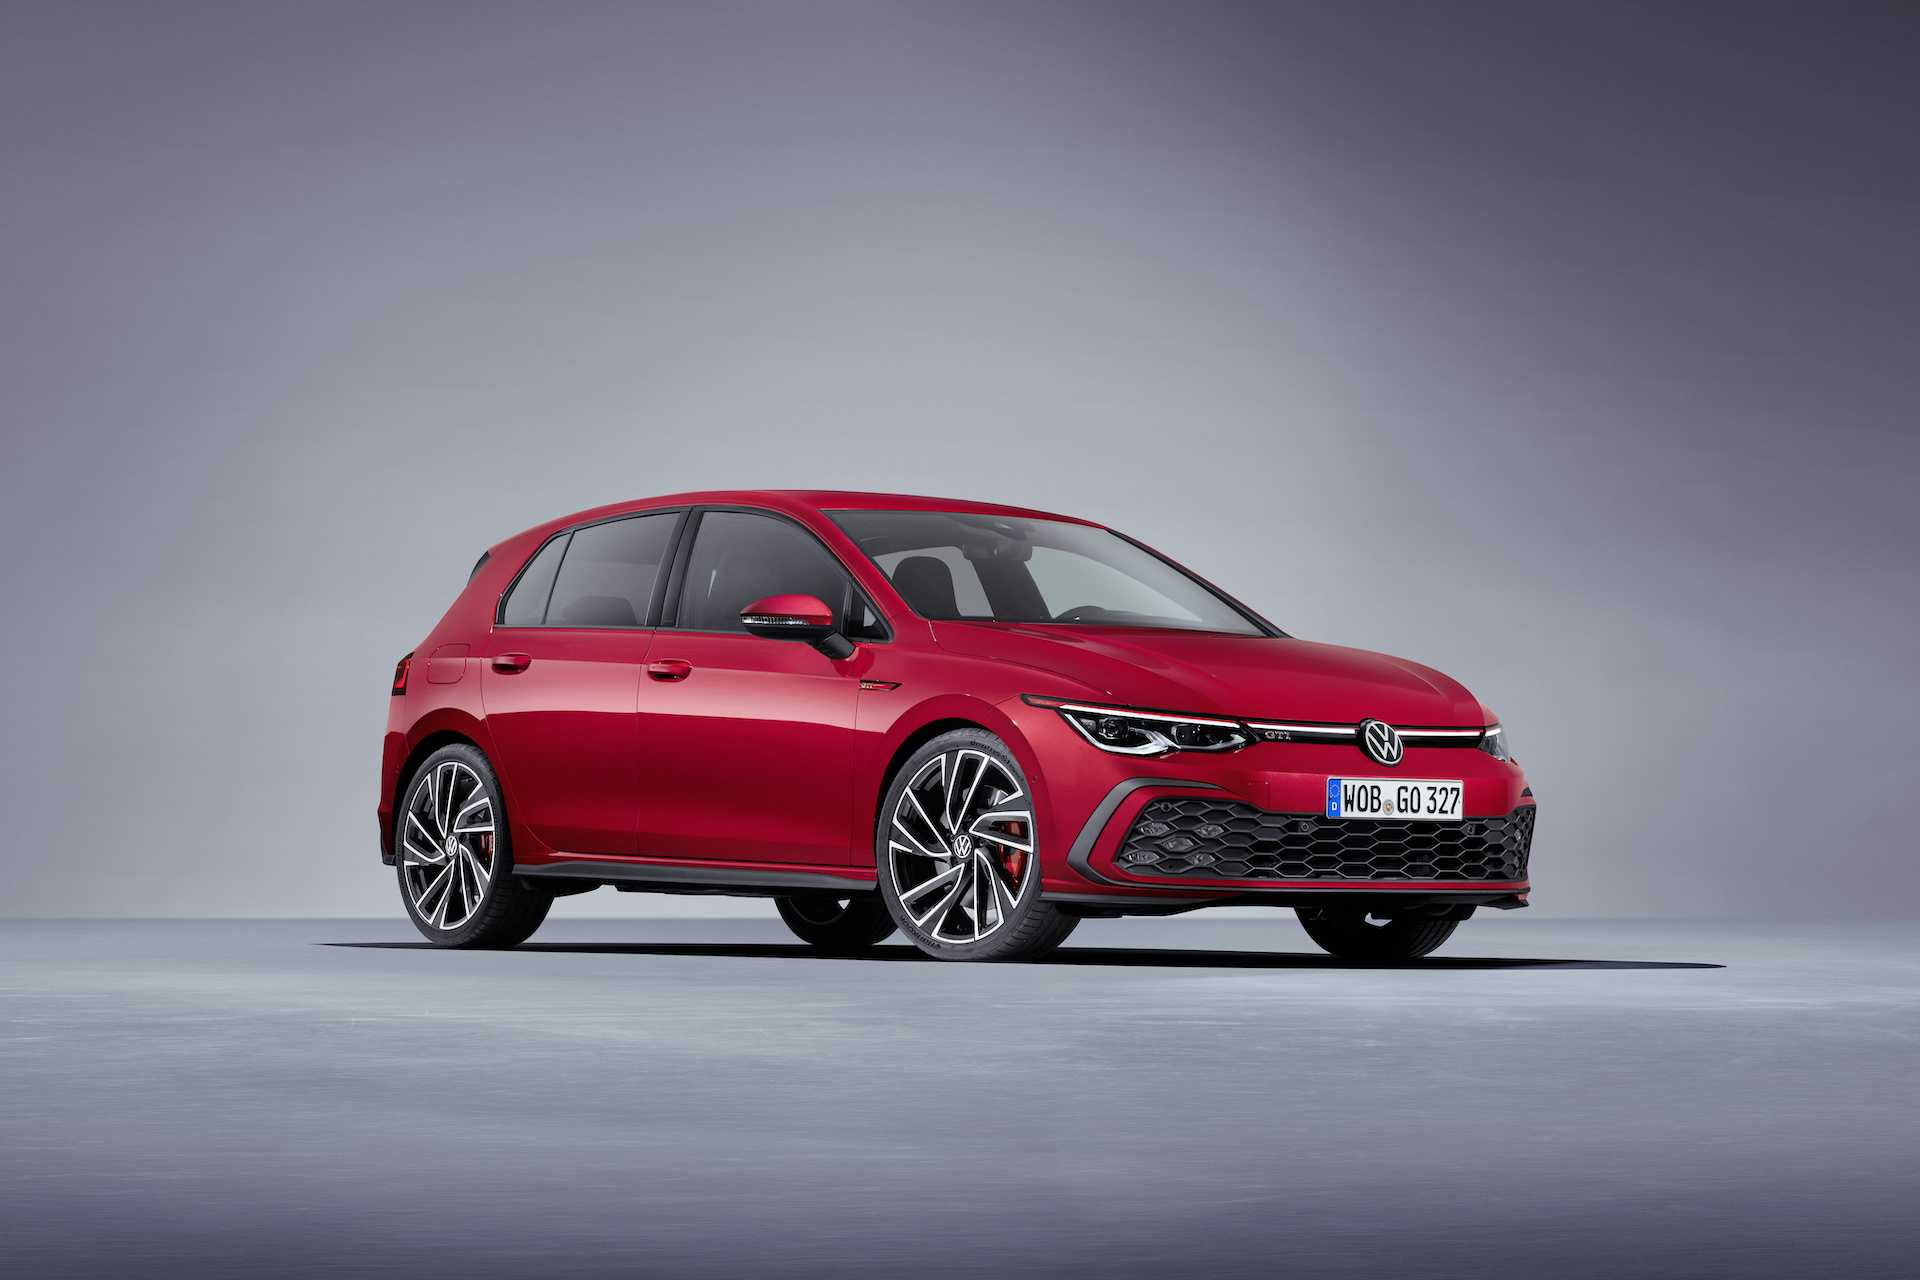 2021 Volkswagen Models Can Expect Big Changes to be Made